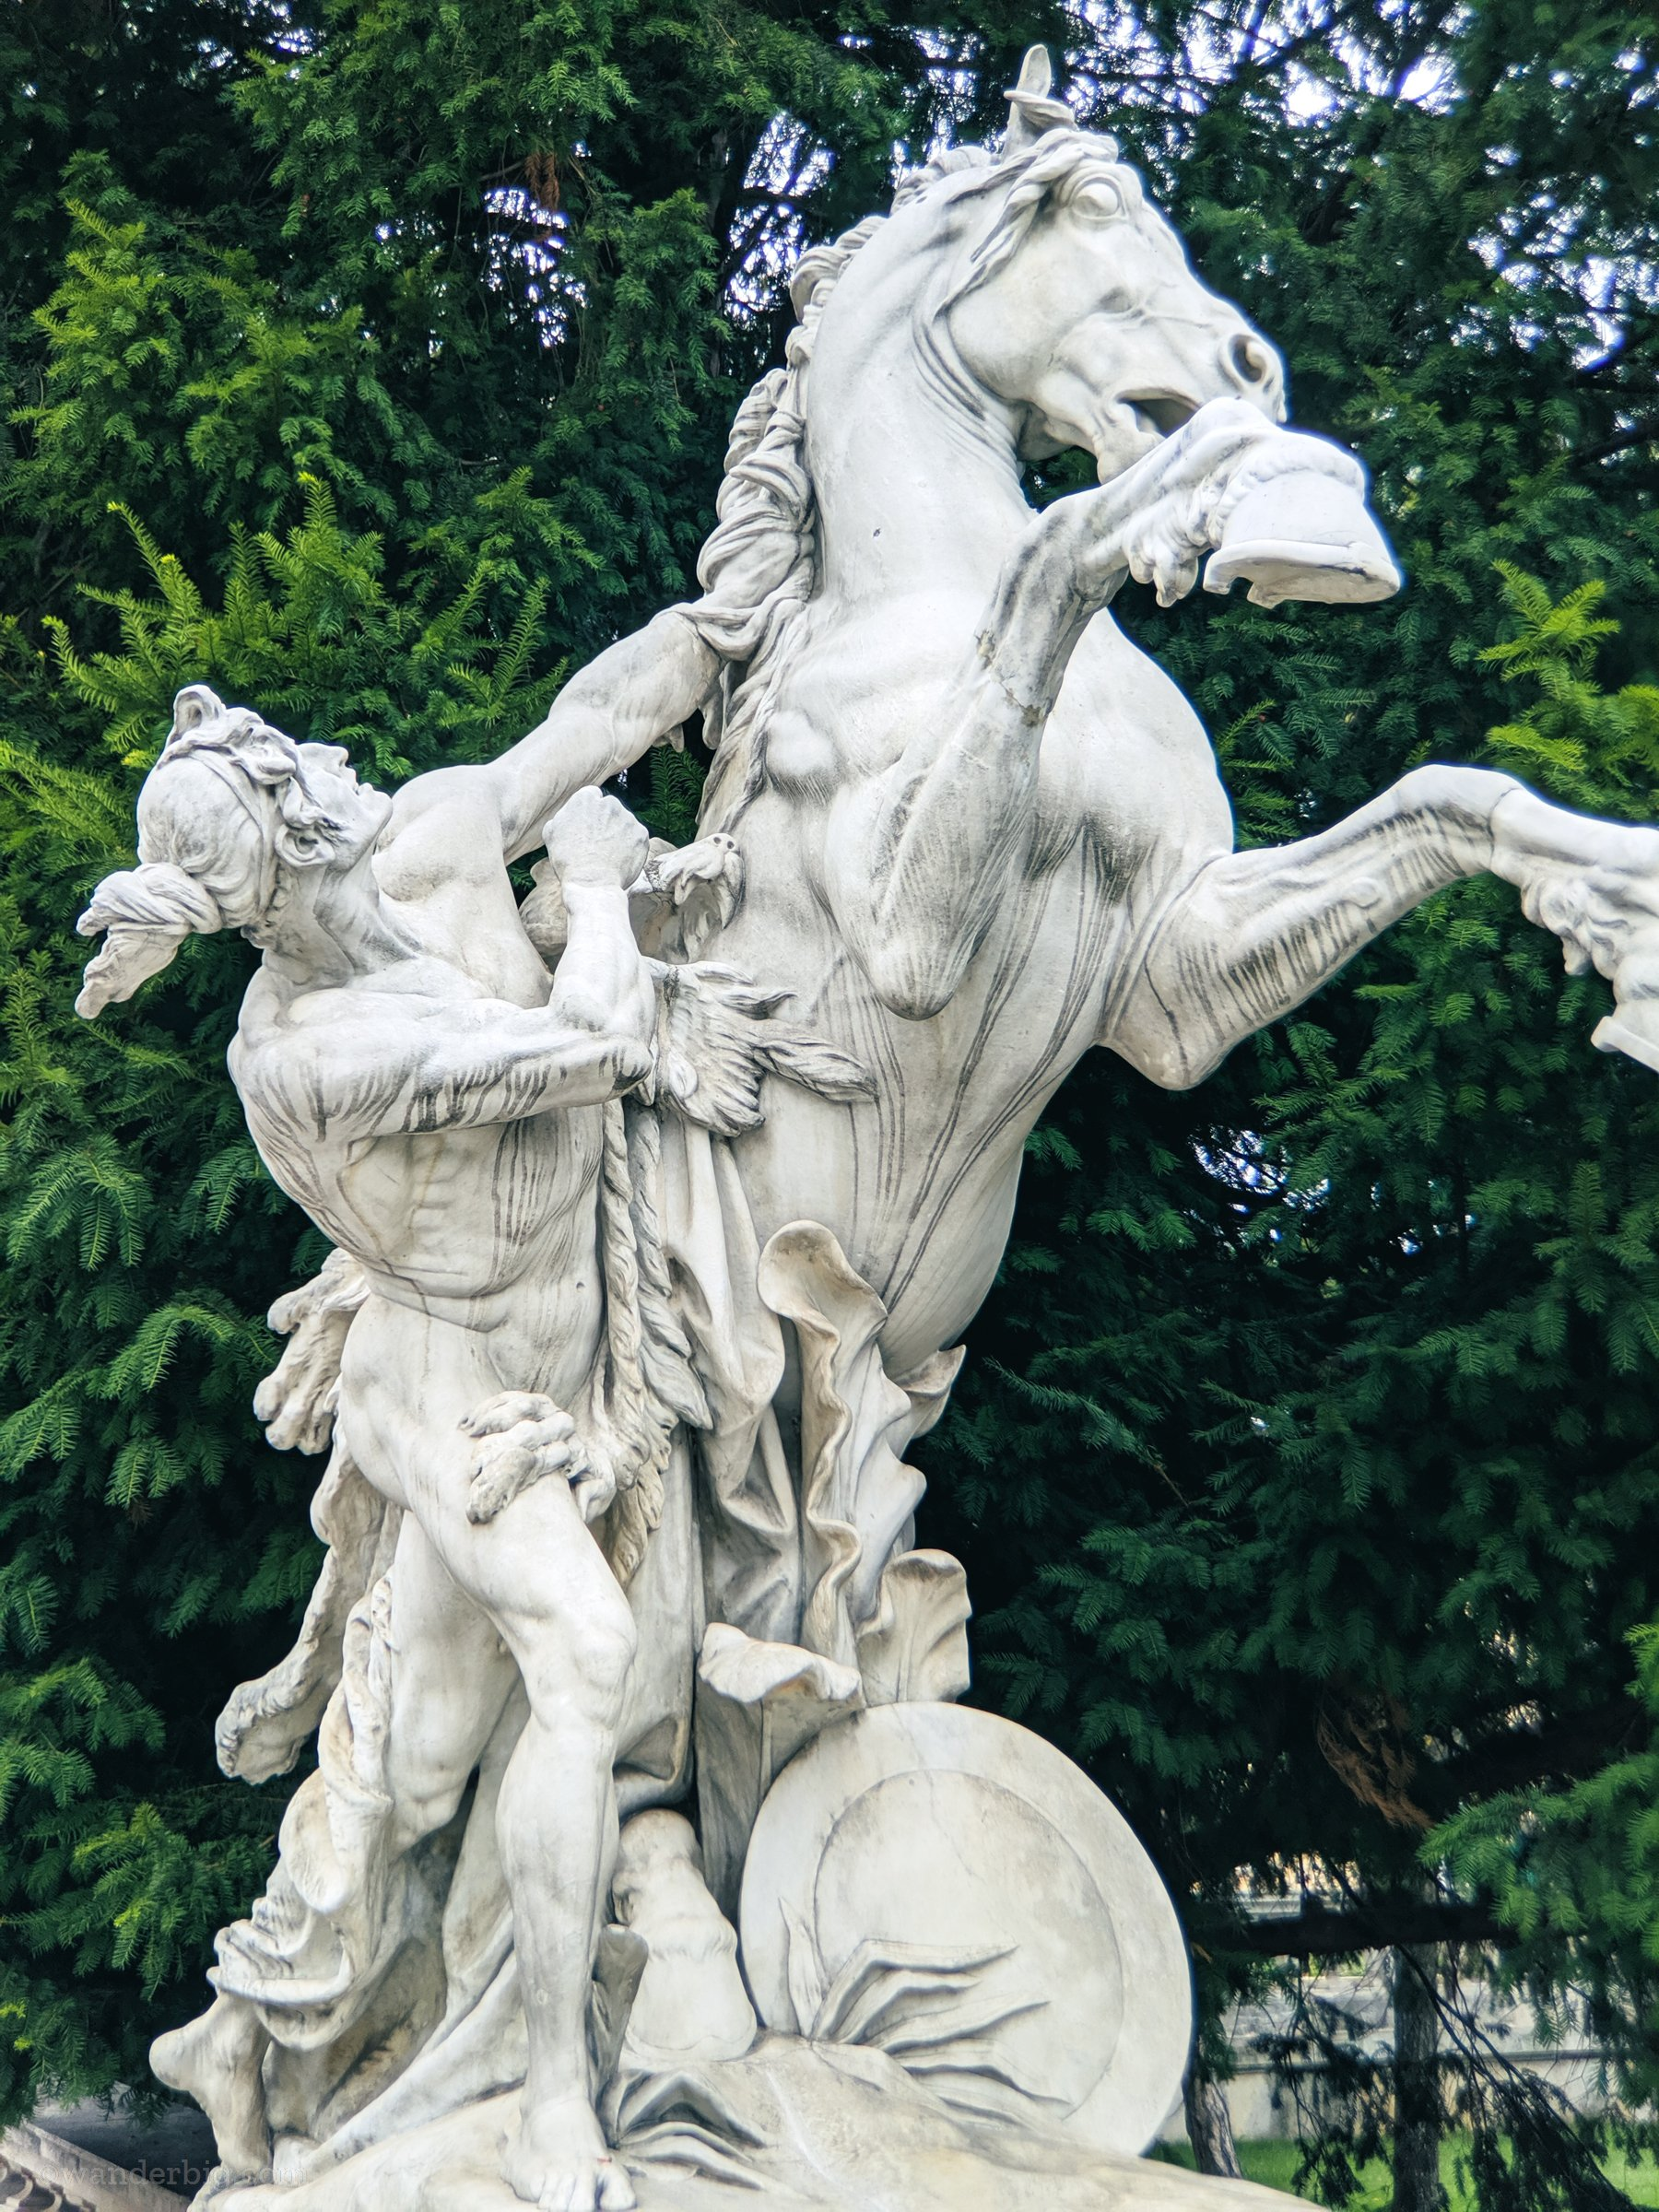 And equestrian statue near a tomb in eastern europe.